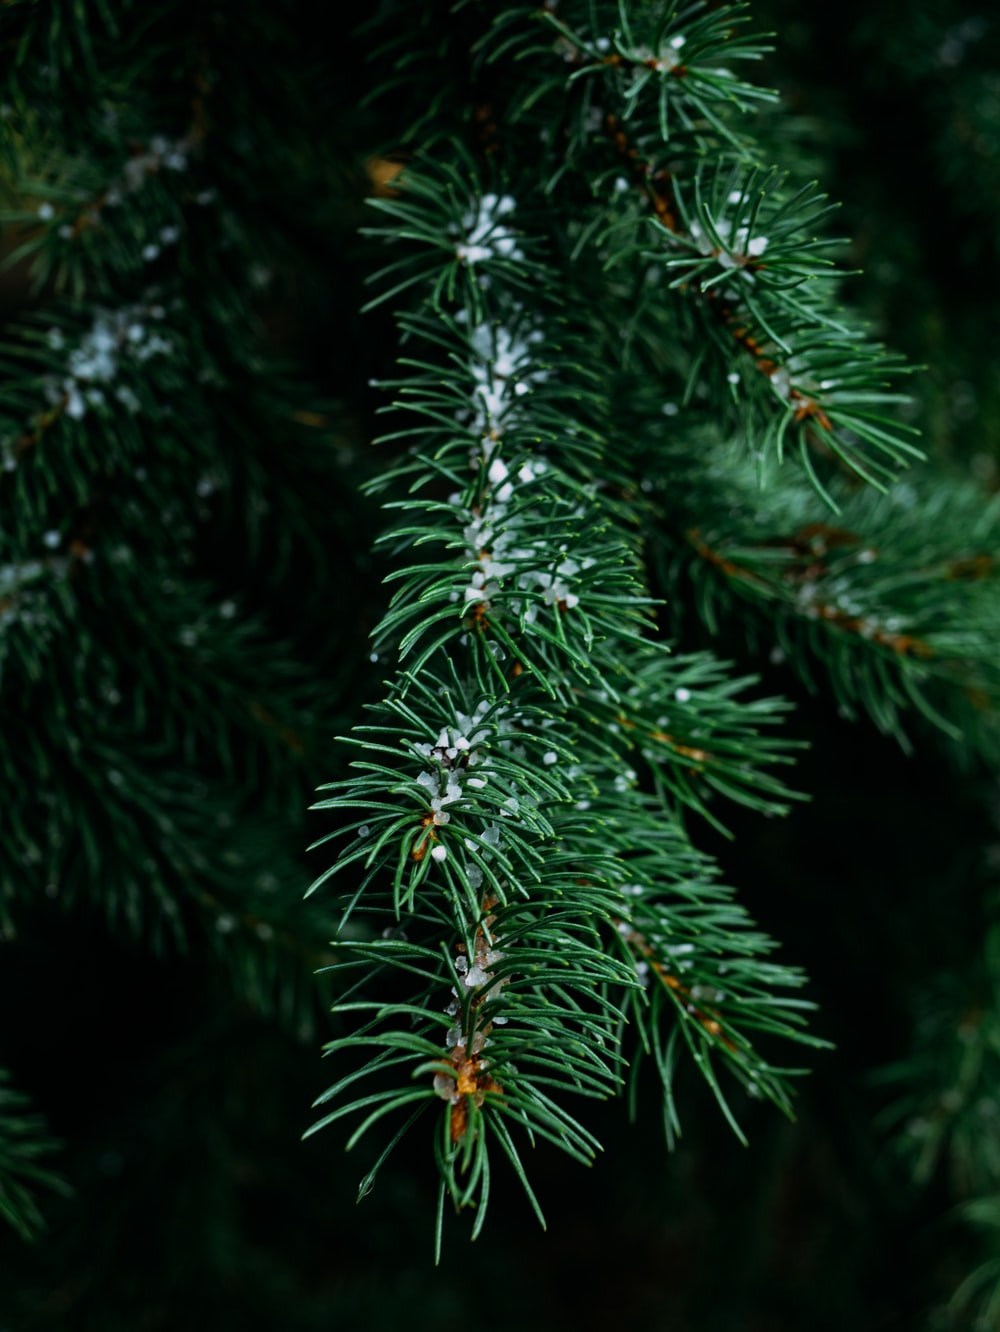 close-up photography of pine tree